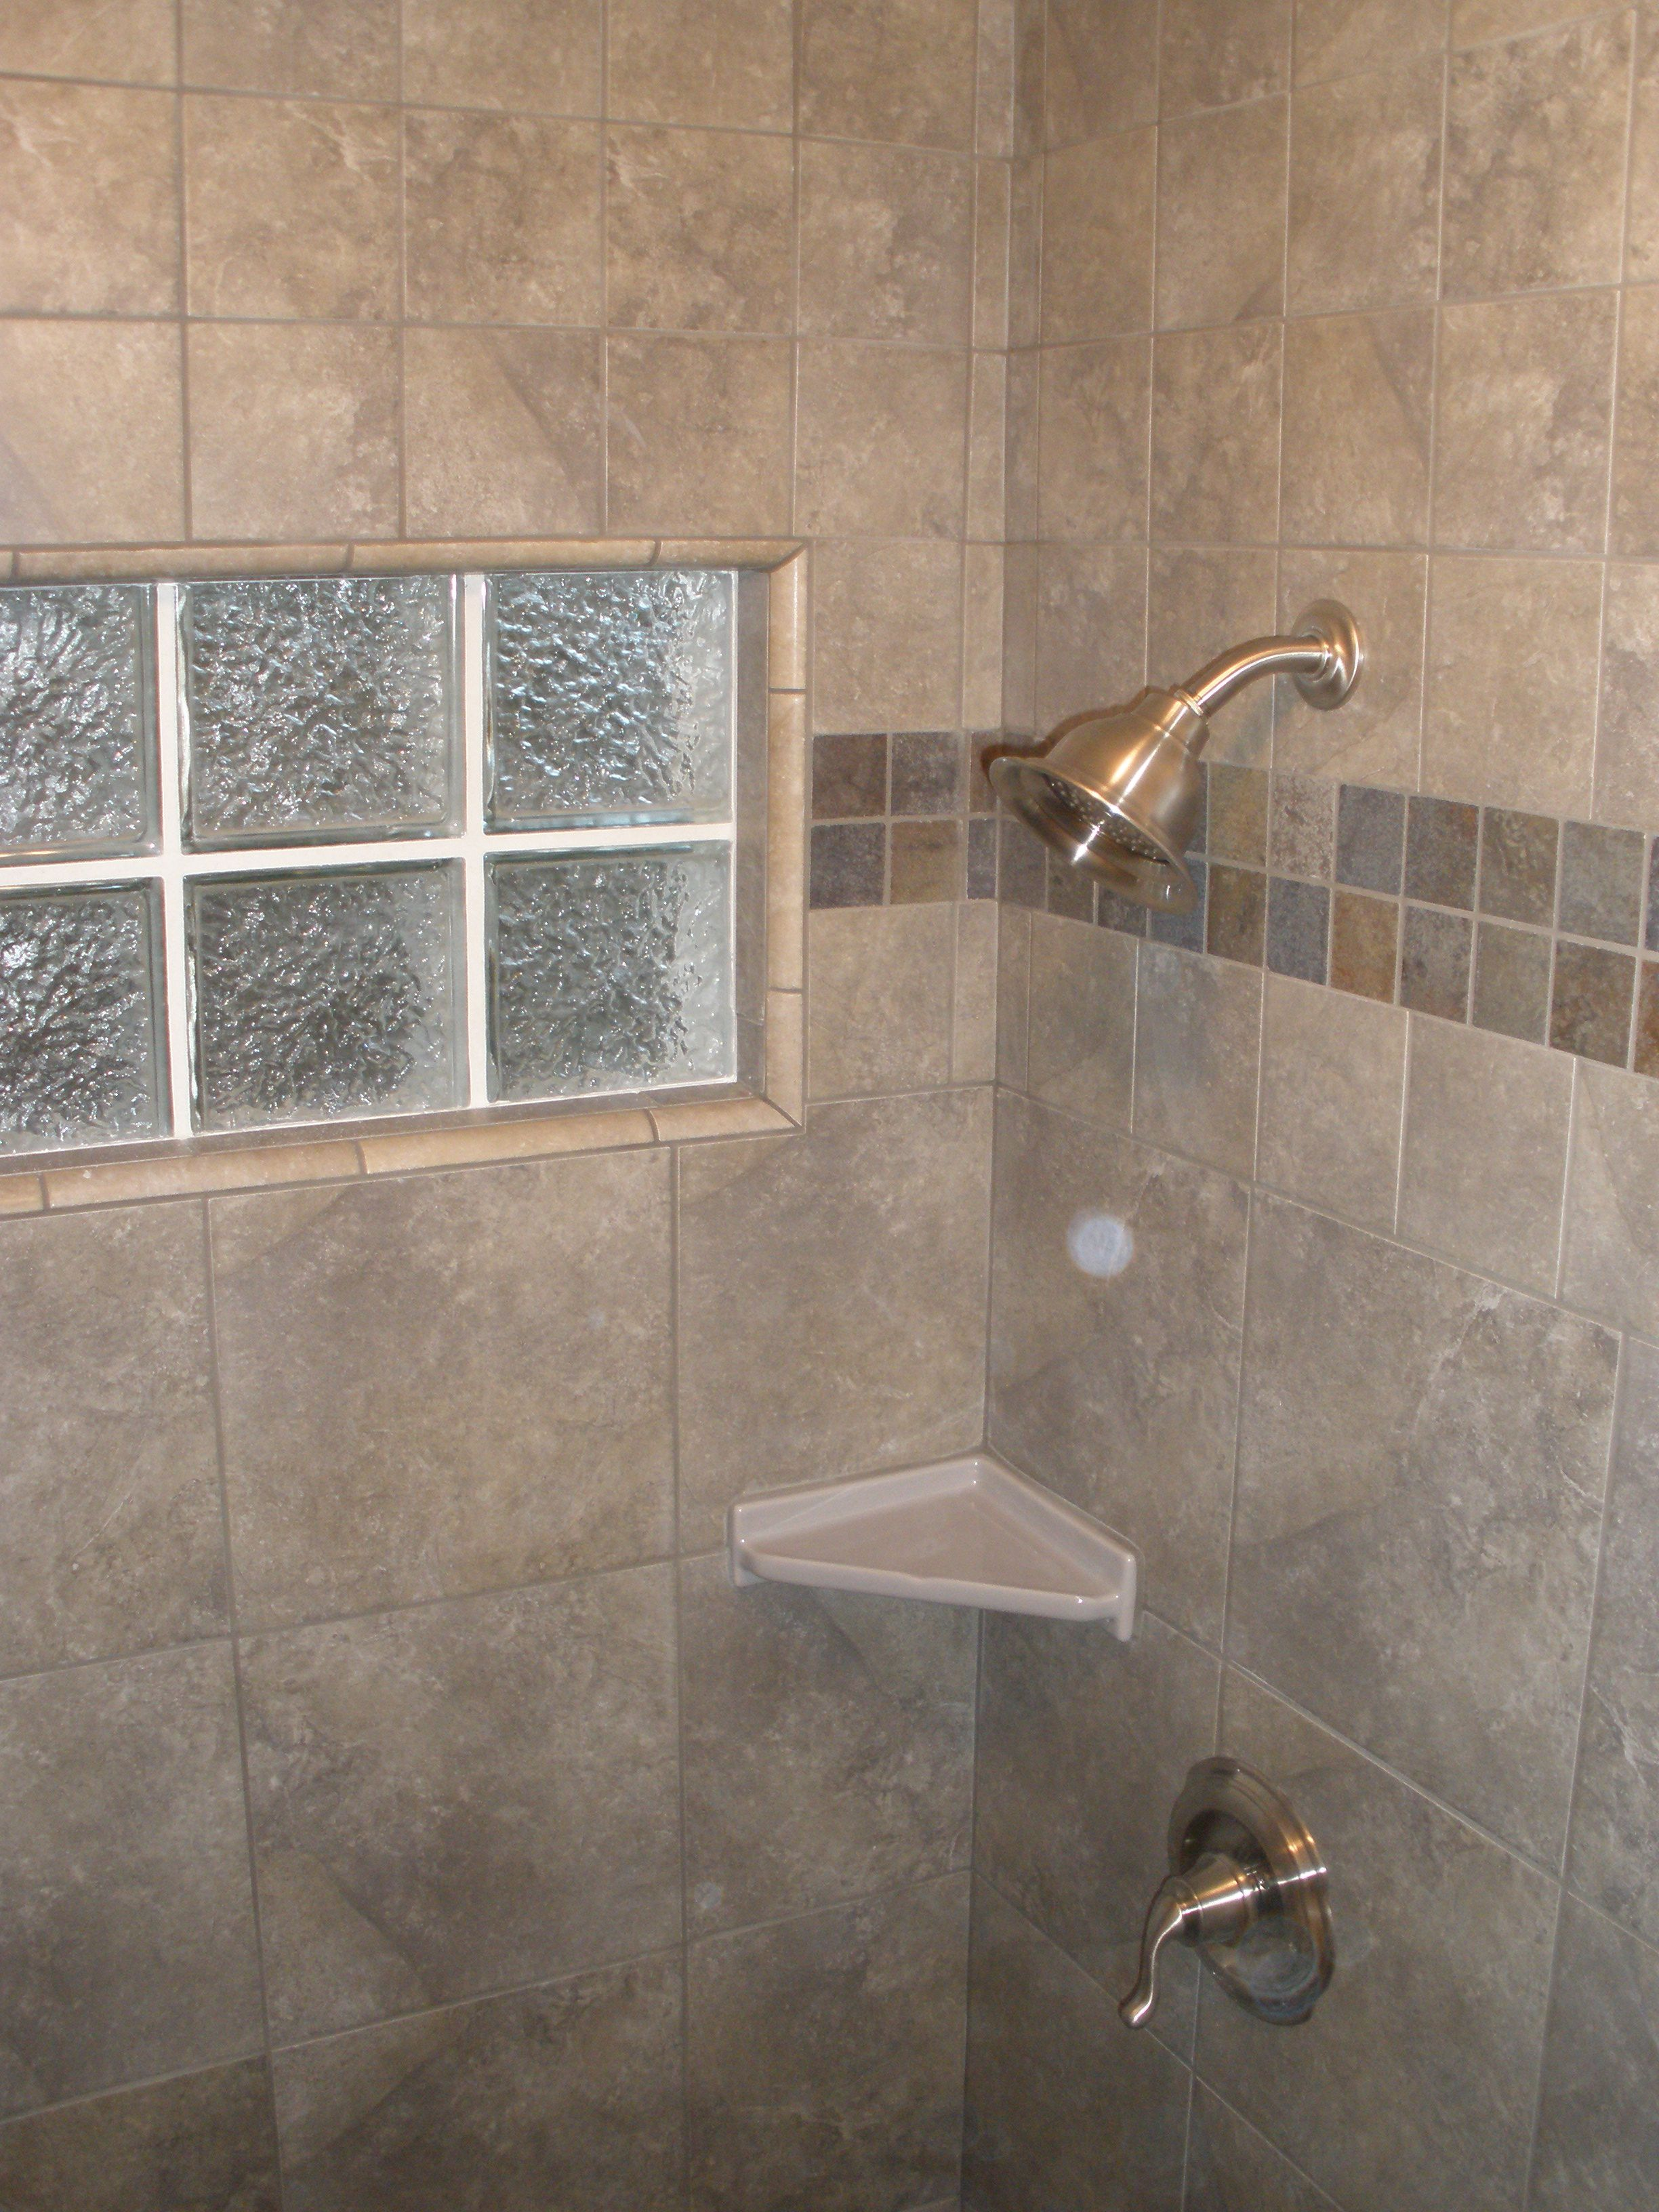 window replaced with glass block icescapes 12x12 porcelain tile 2 shower remodelshower